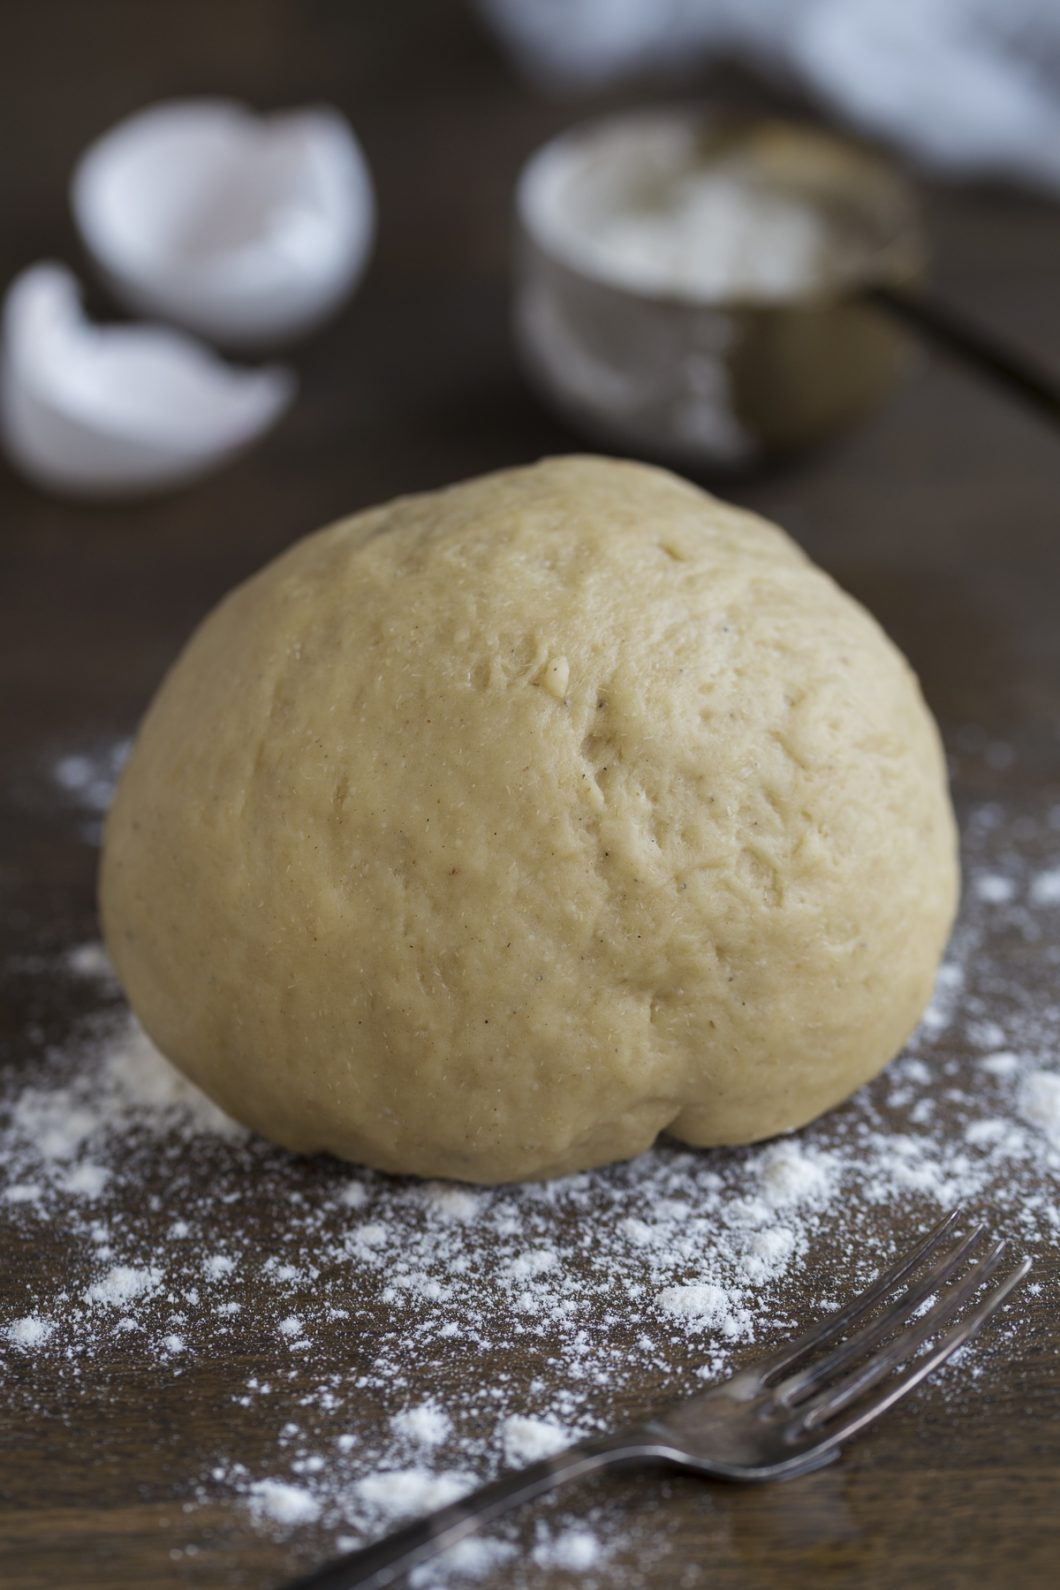 A ball of yeast dough on a floured surface.